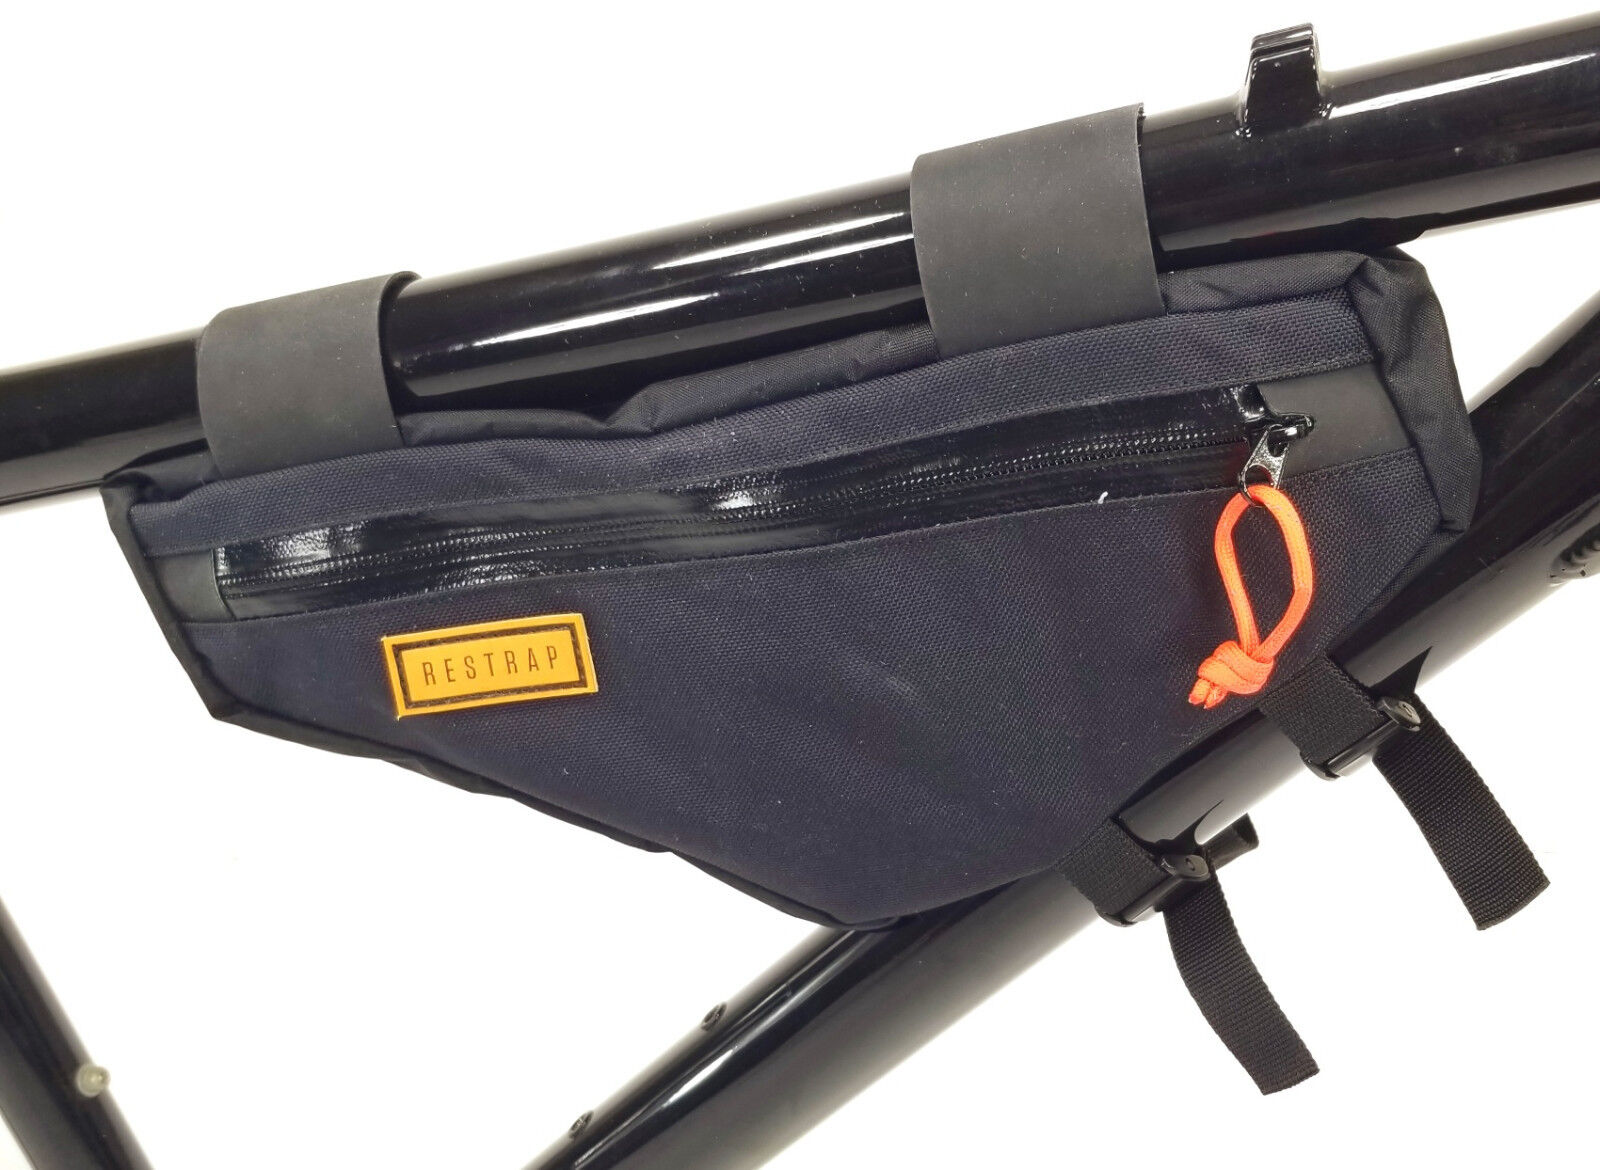 RESTRAP  VX21 WATERPROOF BICYCLE FRAME BAG  get the latest